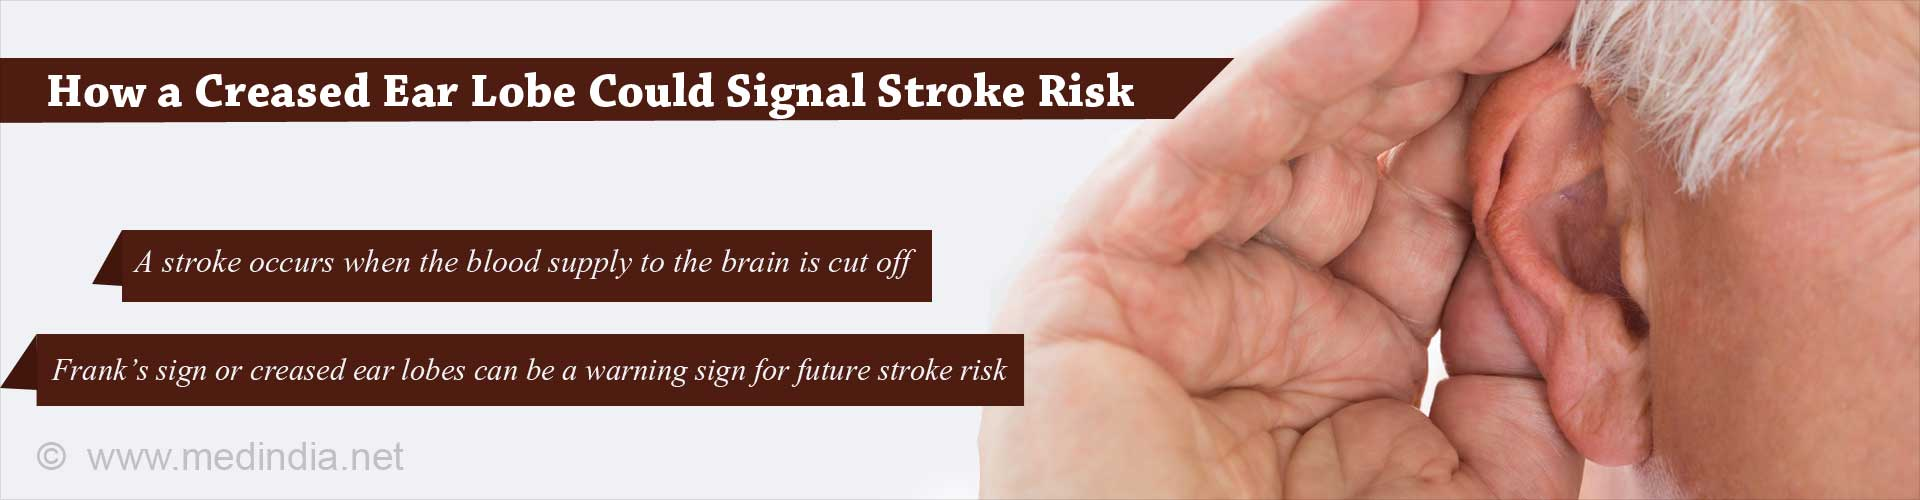 How a Creased Ear Lobe Could Signal Stroke Risk